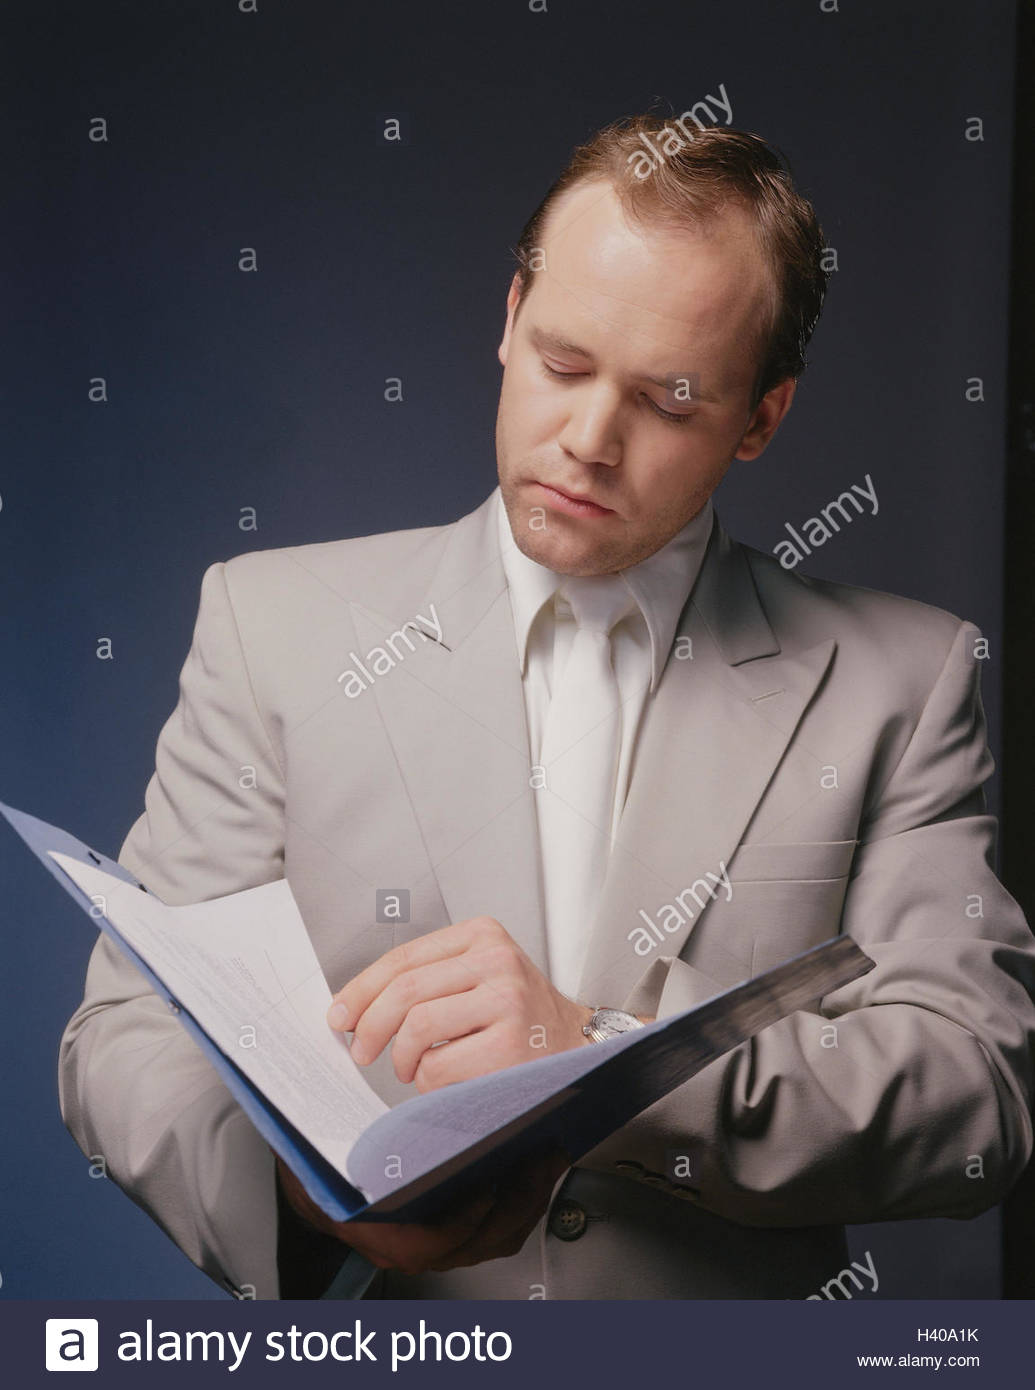 Businessman, bases, read, portrait, man's portrait, 20-30 years, Manager, suit, tie, business papers, papers, - Stock Image